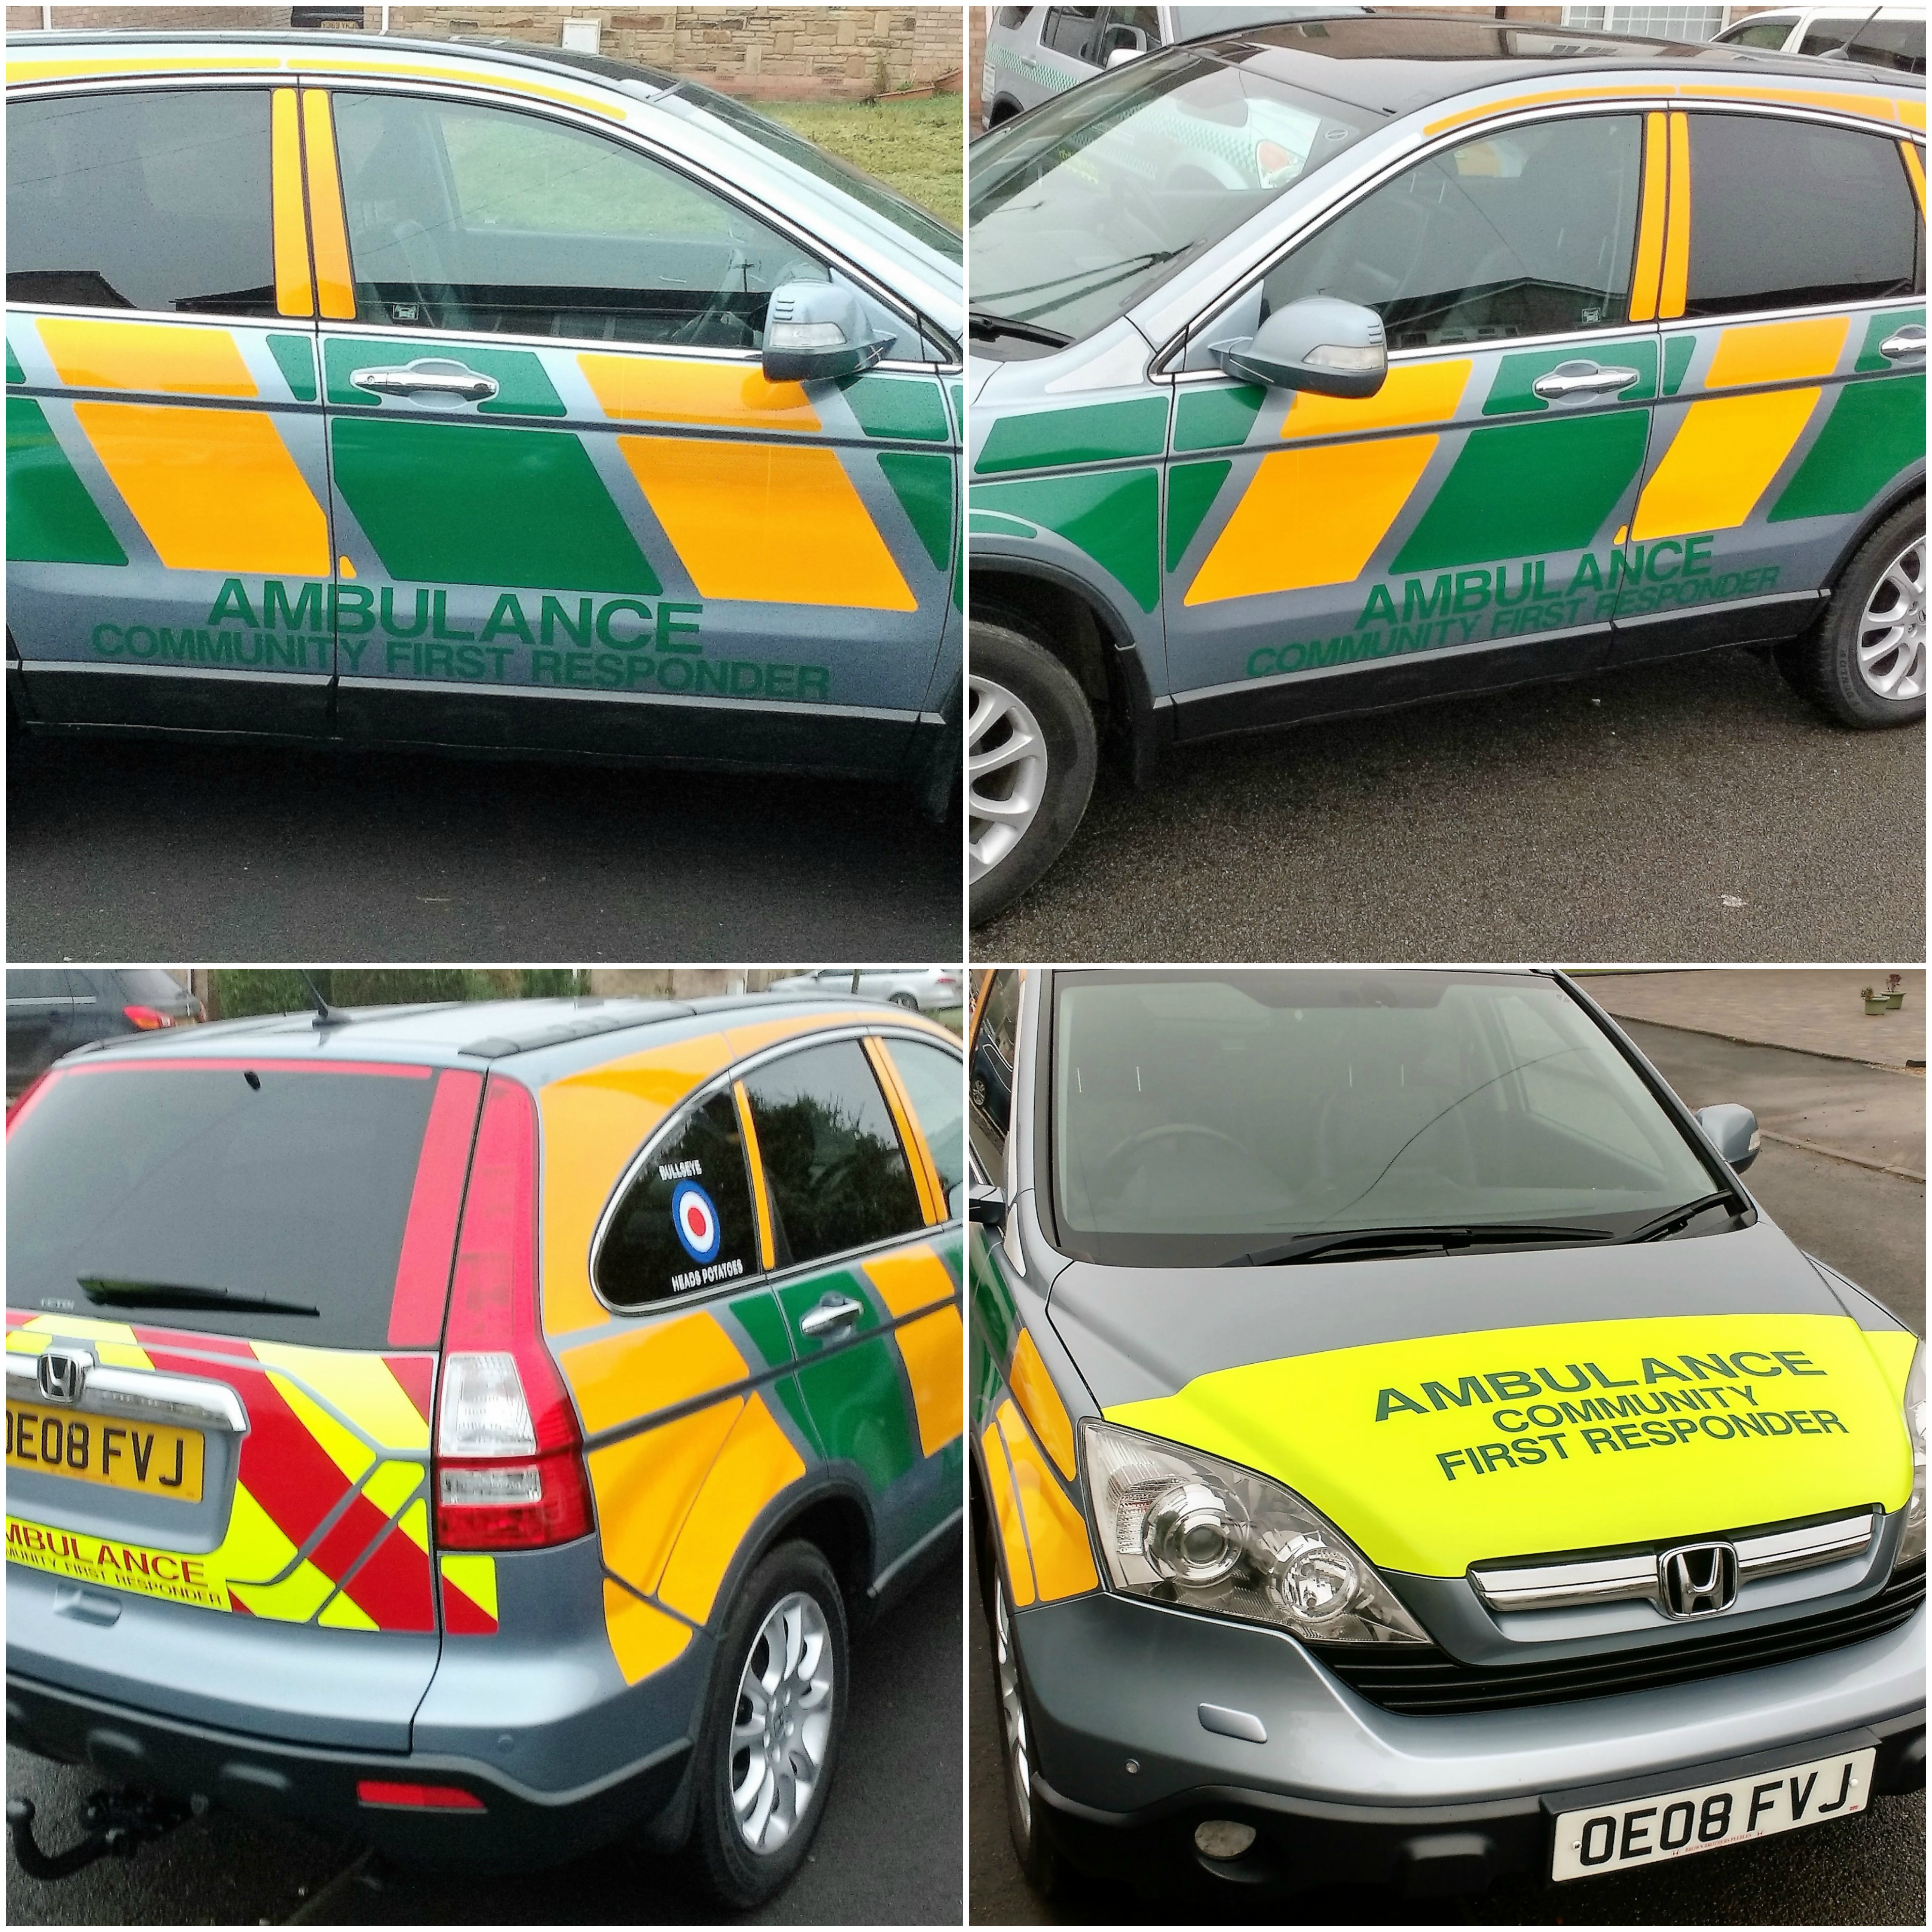 Alveley Community First Responders